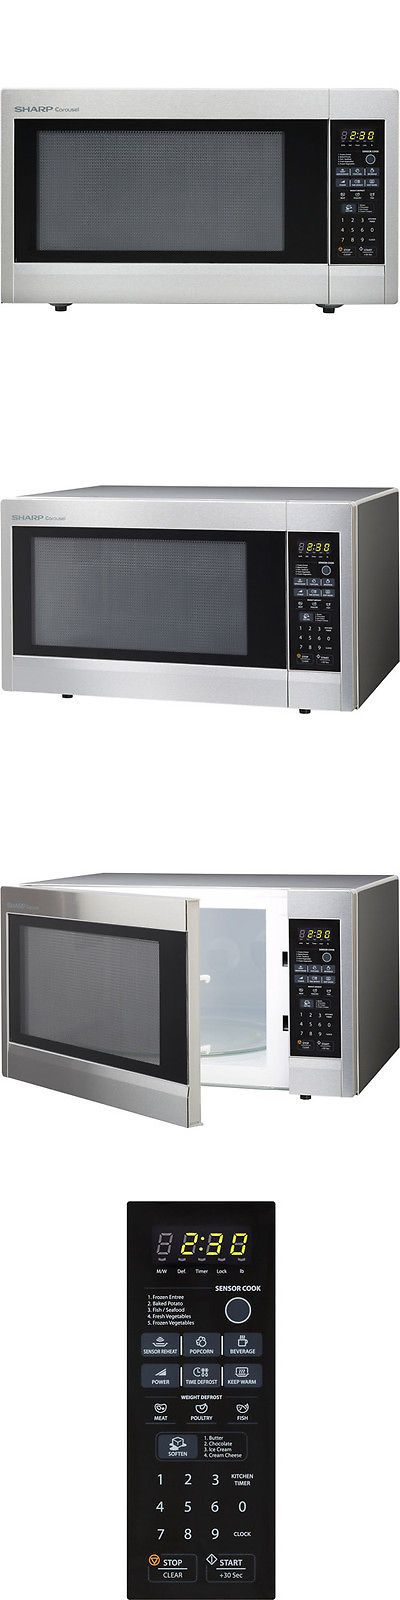 Microwave Ovens 150140 Sharp R651zs Carousel Countertop Oven 2 Cu Ft 1200w Stainless Ste It Now Only 232 72 On Ebay